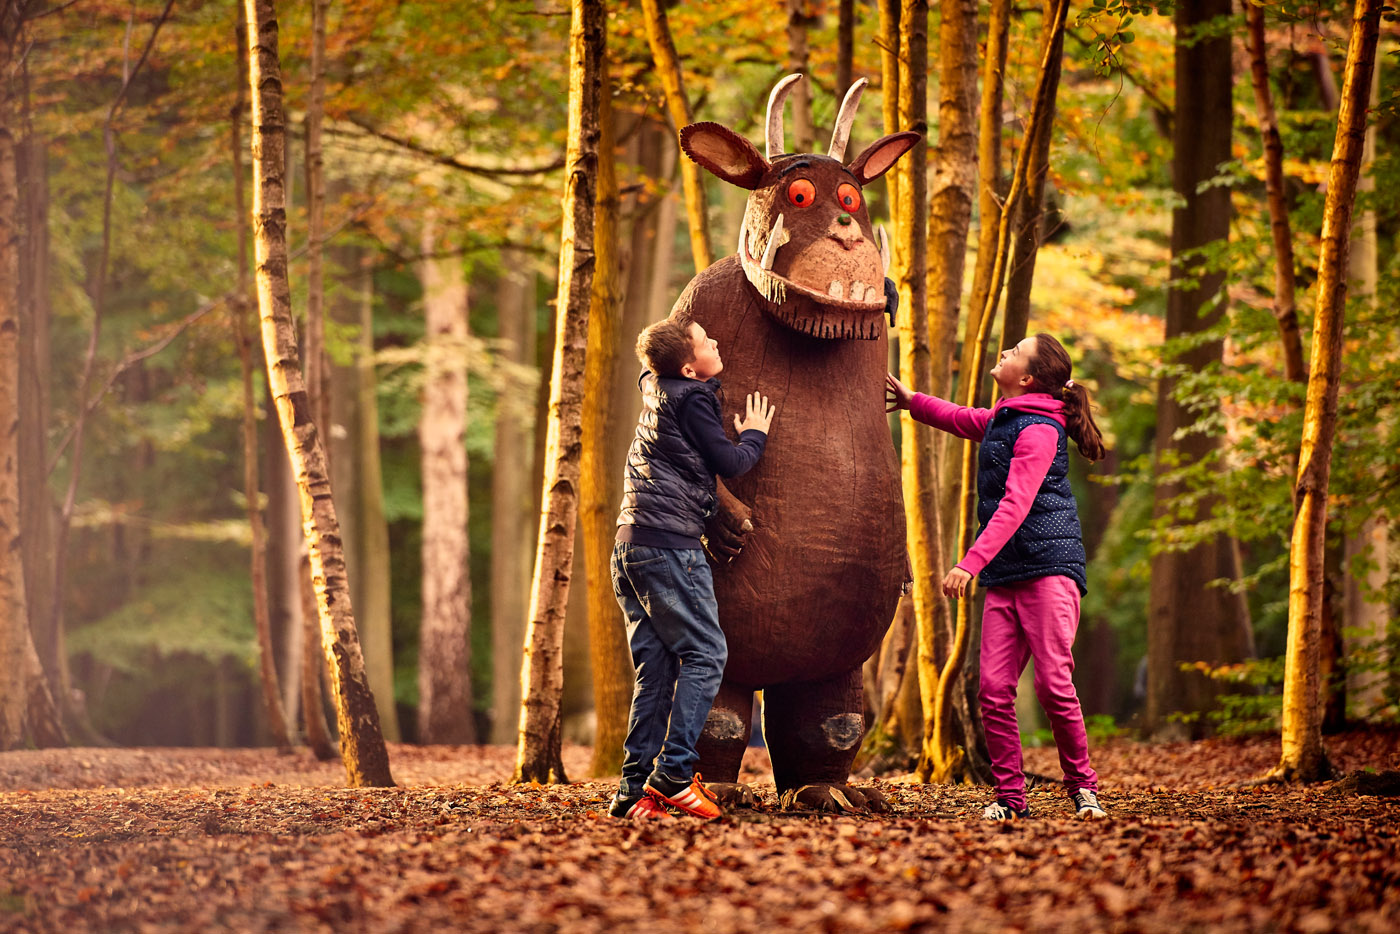 Two kids playing with a statue of the Gruffalo